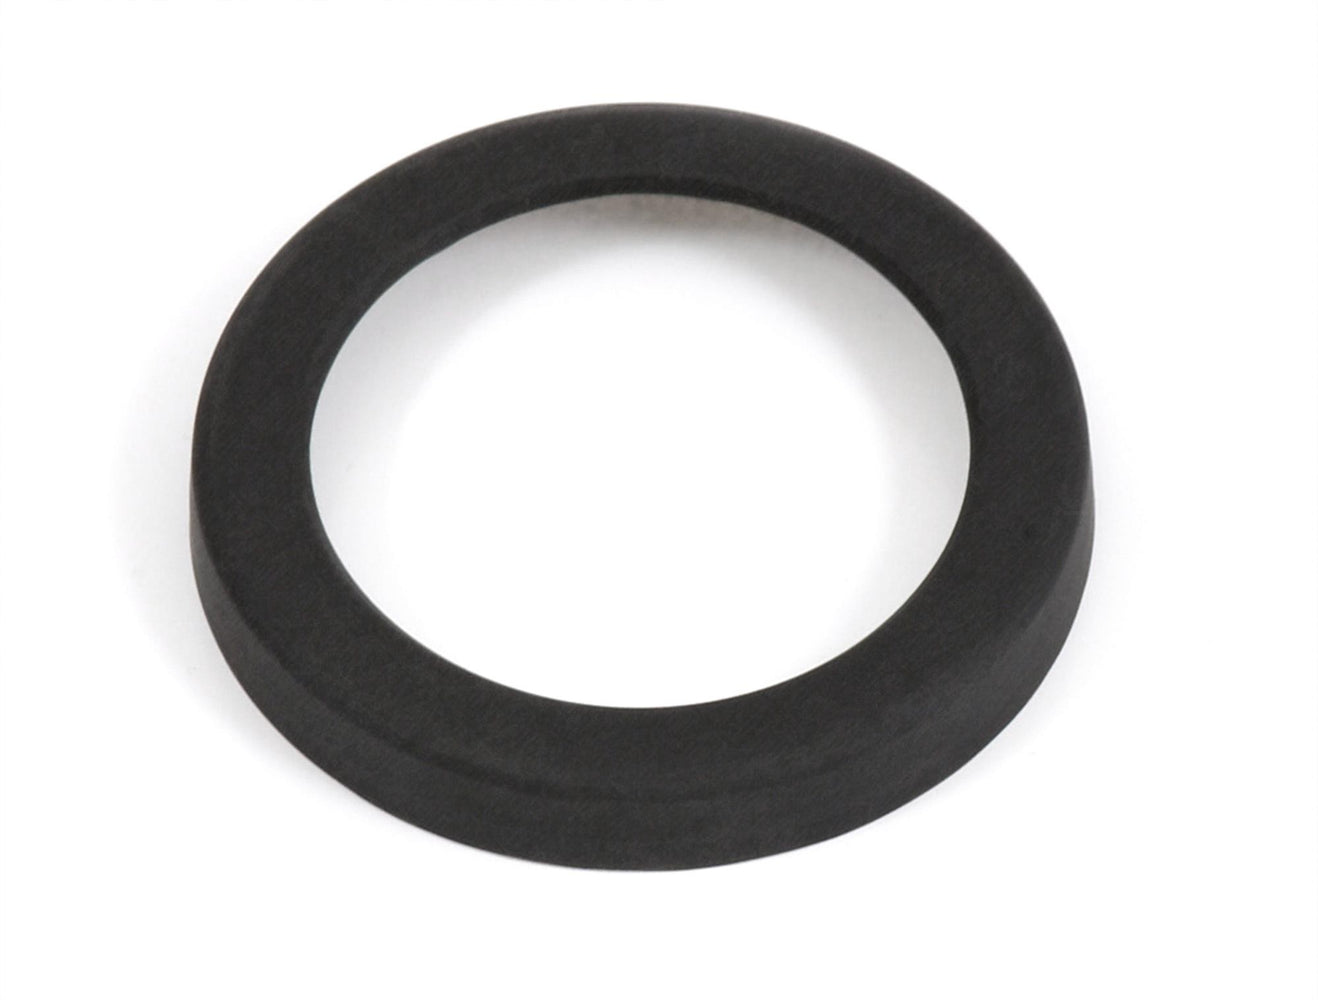 Baader Baader Hyperion SP54 Rubber Thread Cover